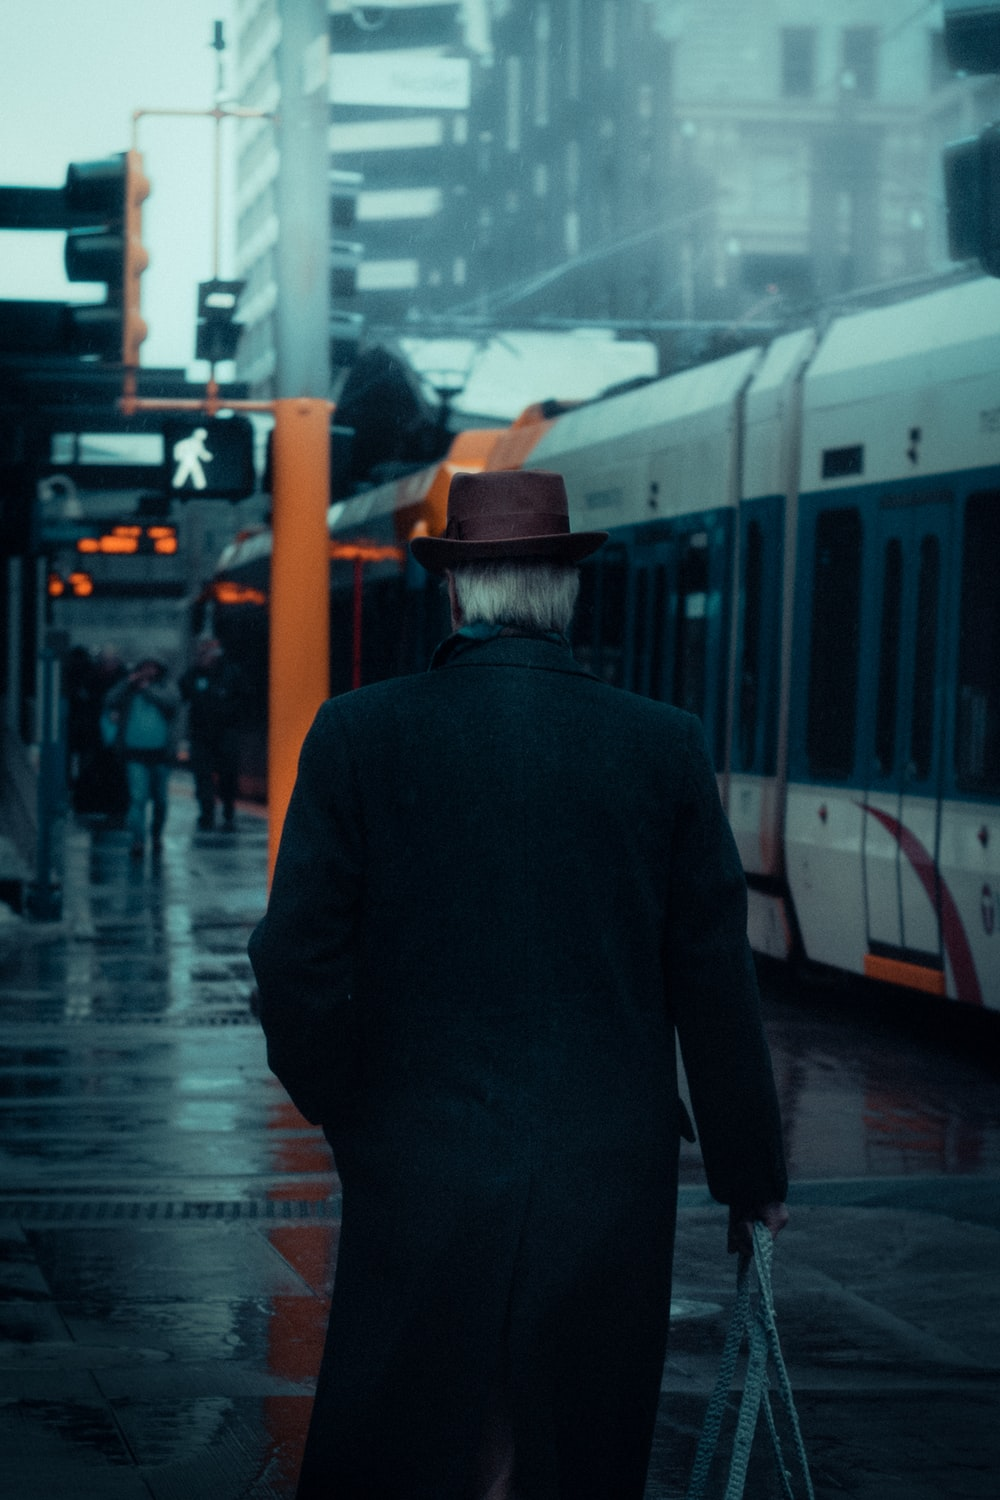 man in black jacket and brown hat standing in front of white train